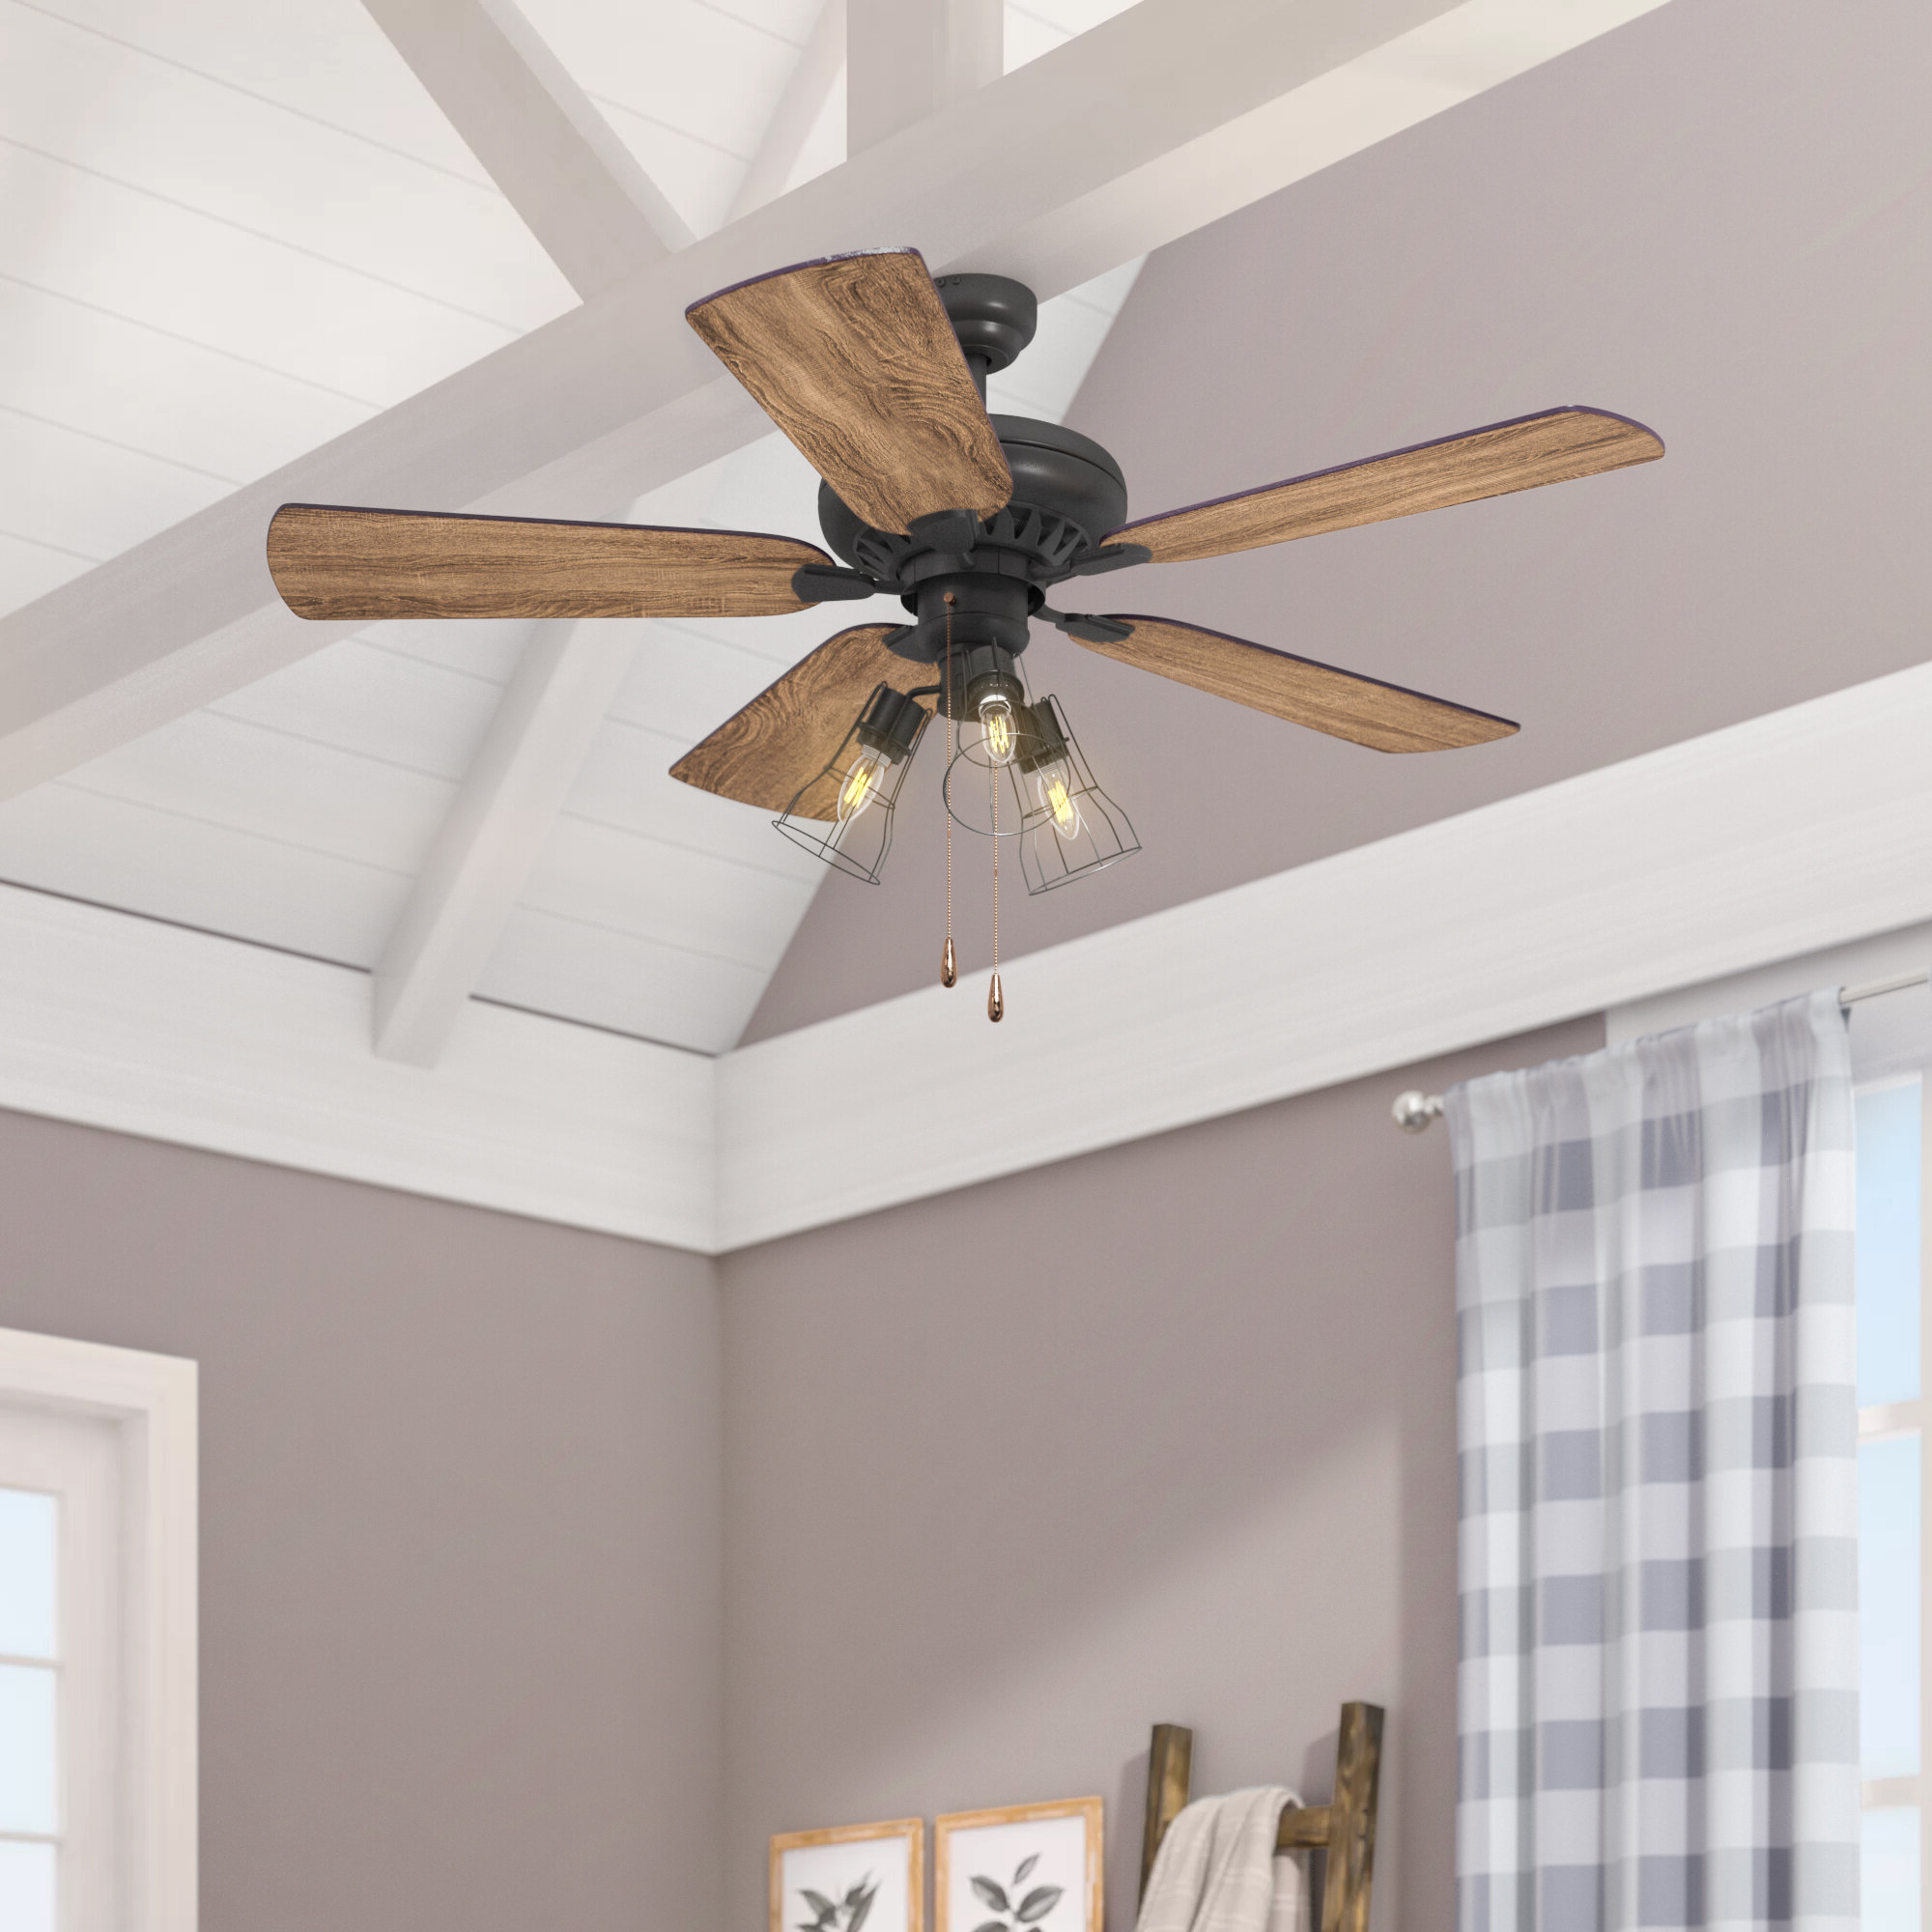 """Widely Used O'hanlon 5 Blade Led Ceiling Fans Inside 52"""" Theron 5 Blade Led Ceiling Fan (View 20 of 20)"""